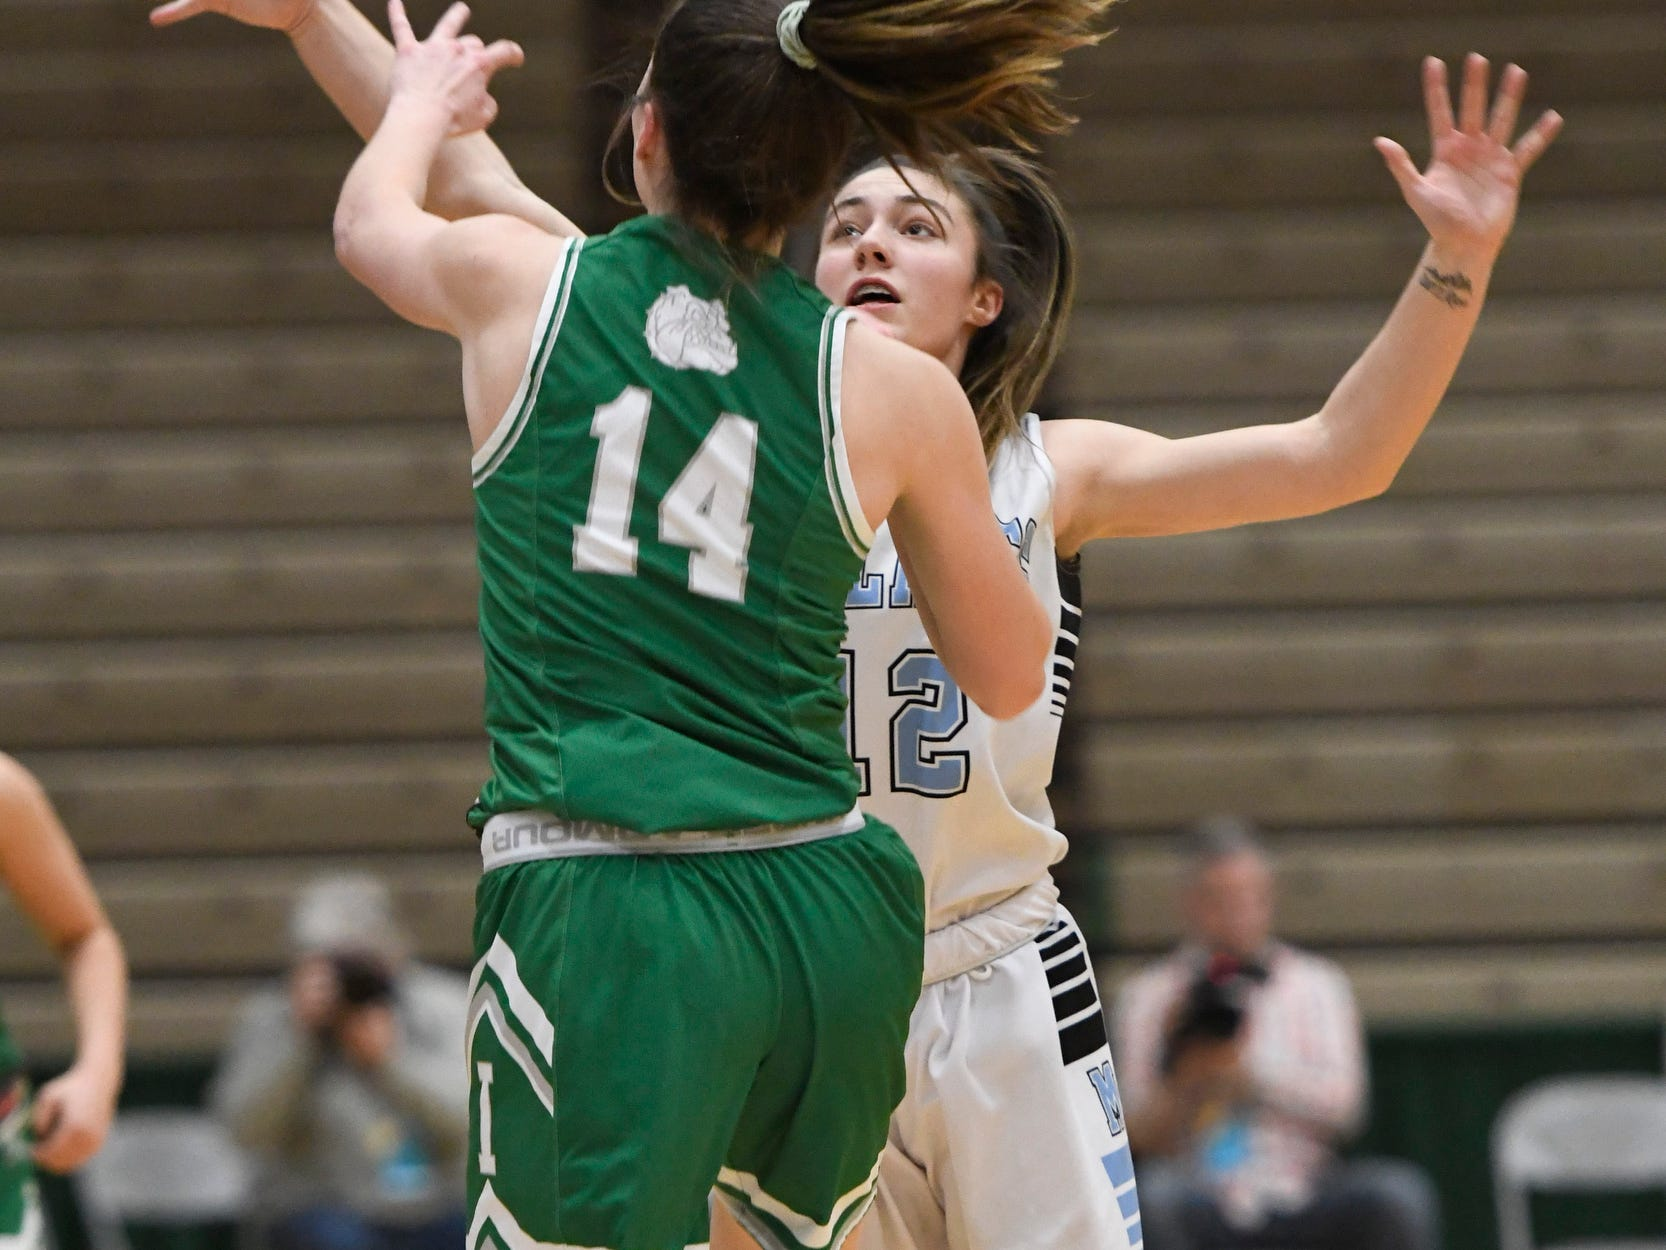 Midlakes' Alaina Forbes knocks a ball away from Irvington's Mia Mascone during the Class B State Championship at Hudson Valley Community College on March 16, 2019, in Troy, N.Y.